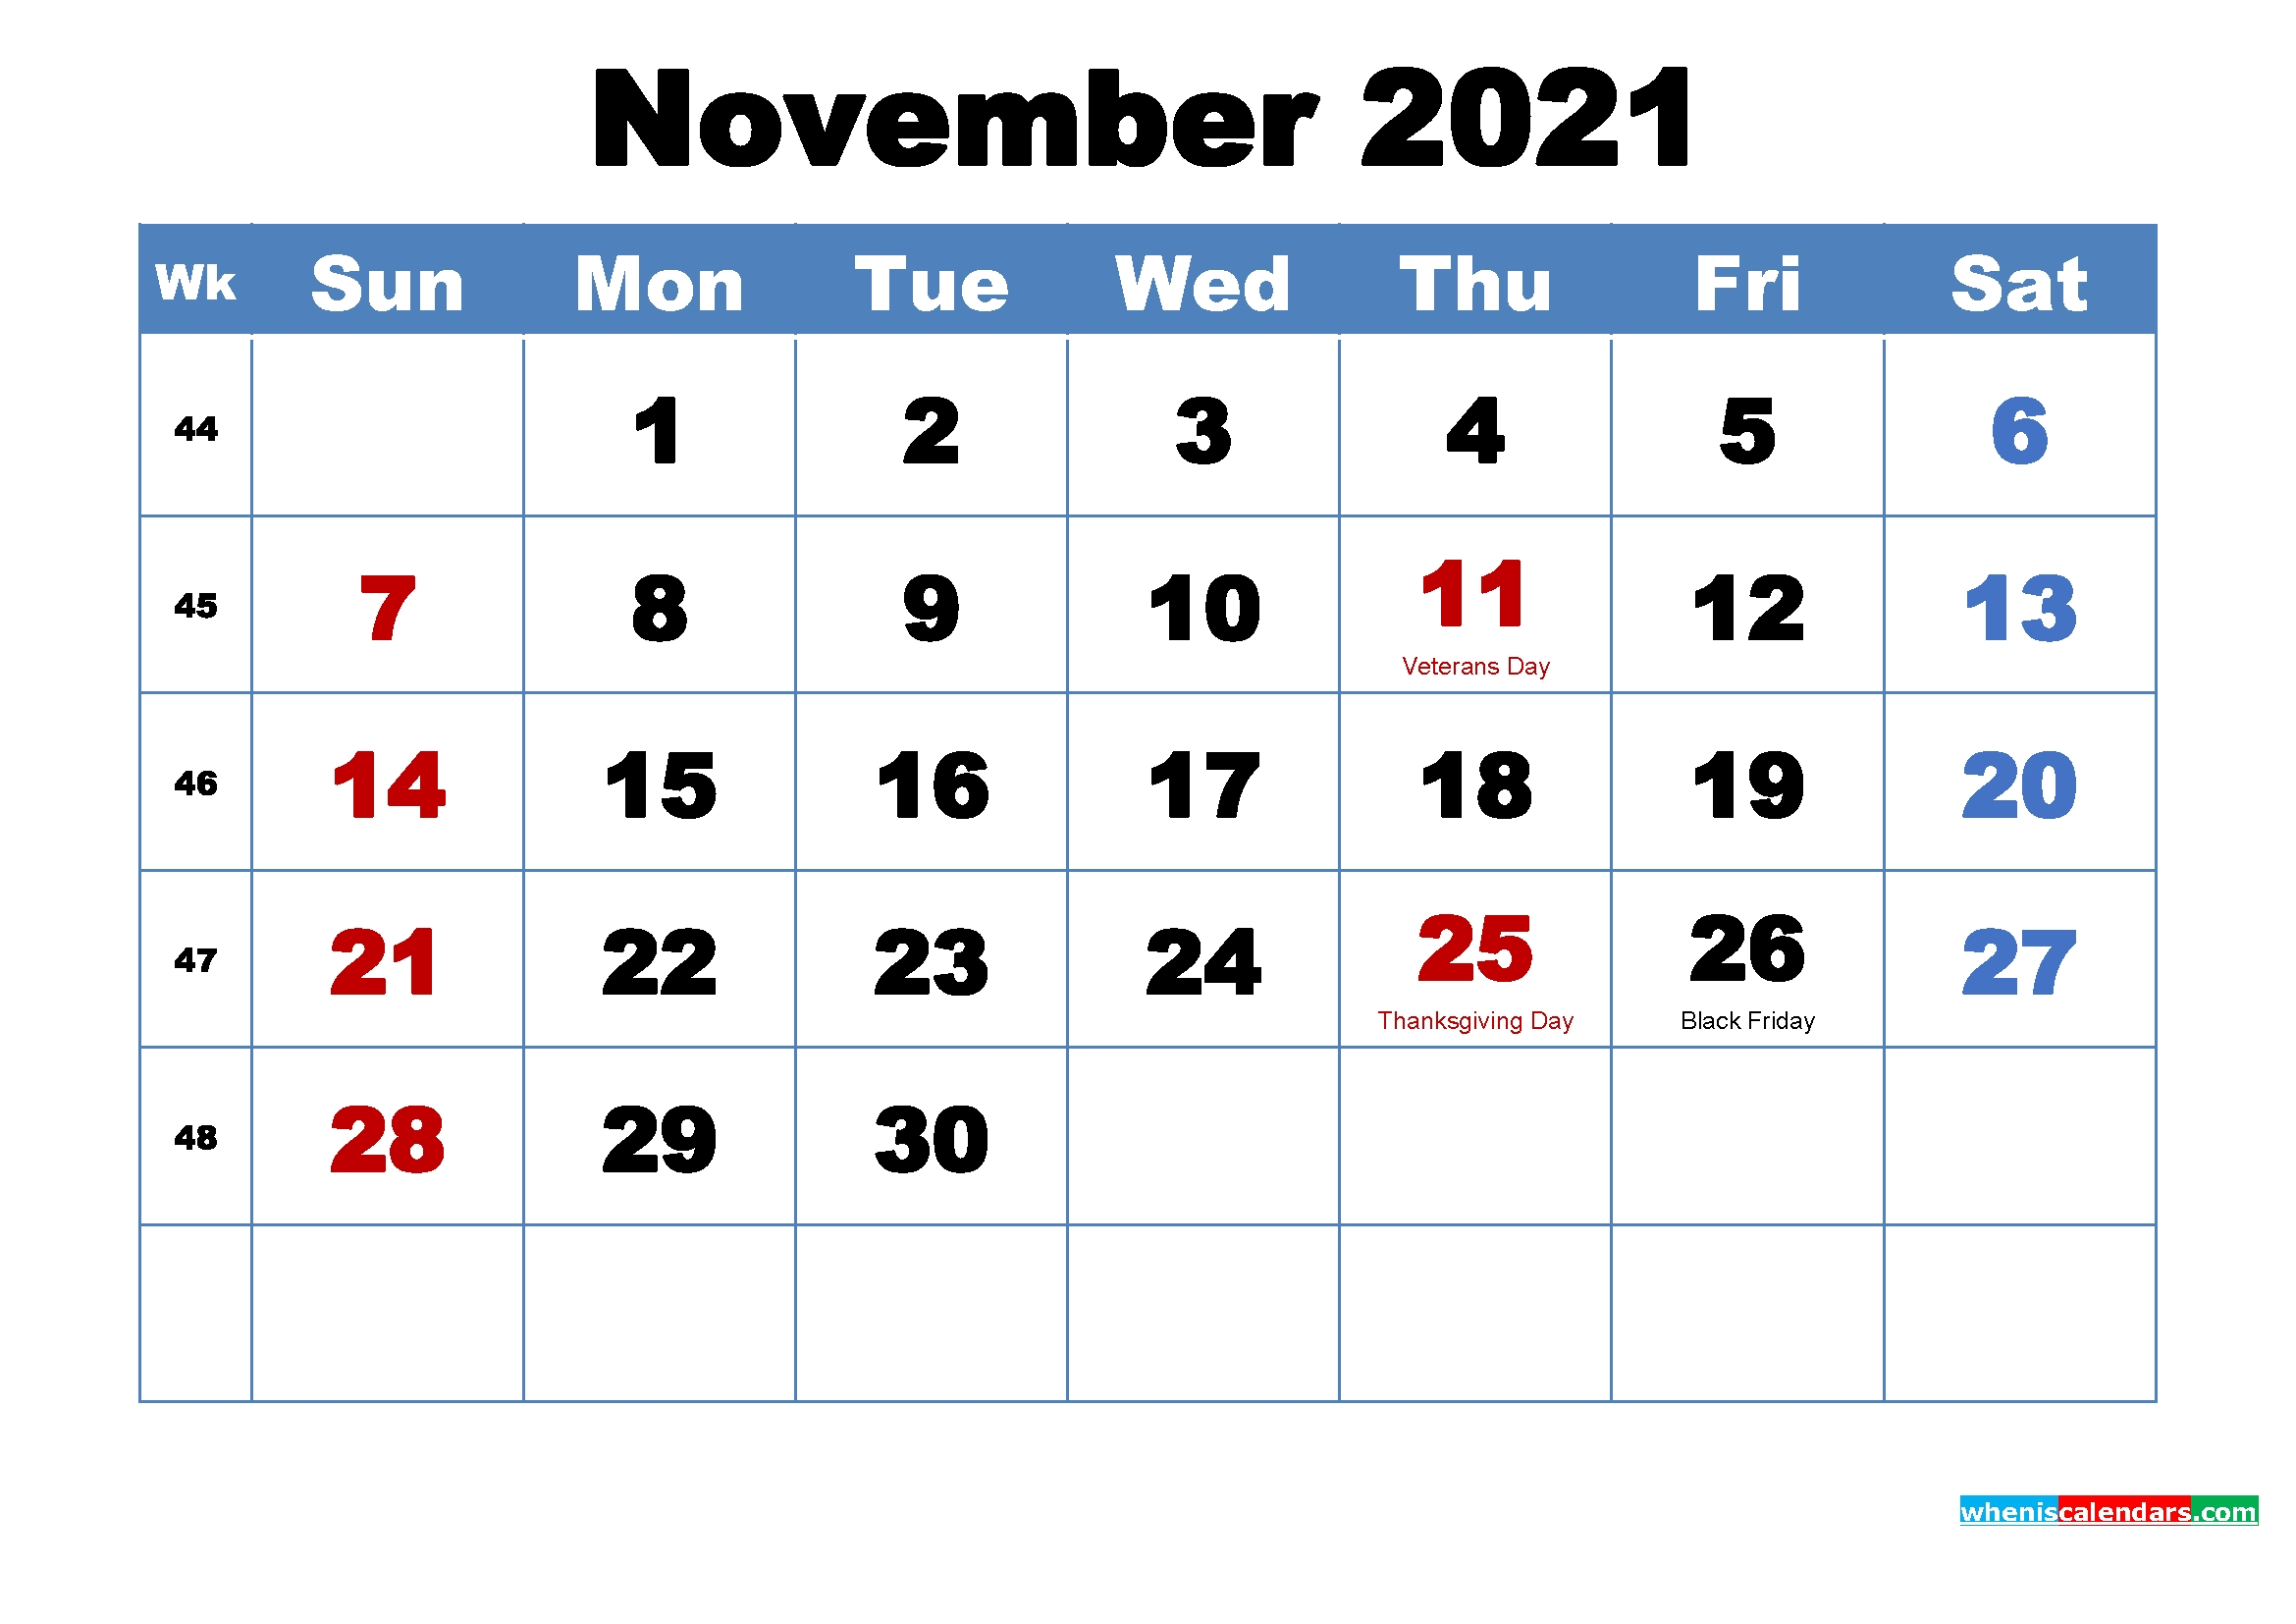 Printable 2021 Calendarmonth November | Free Printable  2021 Free Printable Calendars Without Downloading November